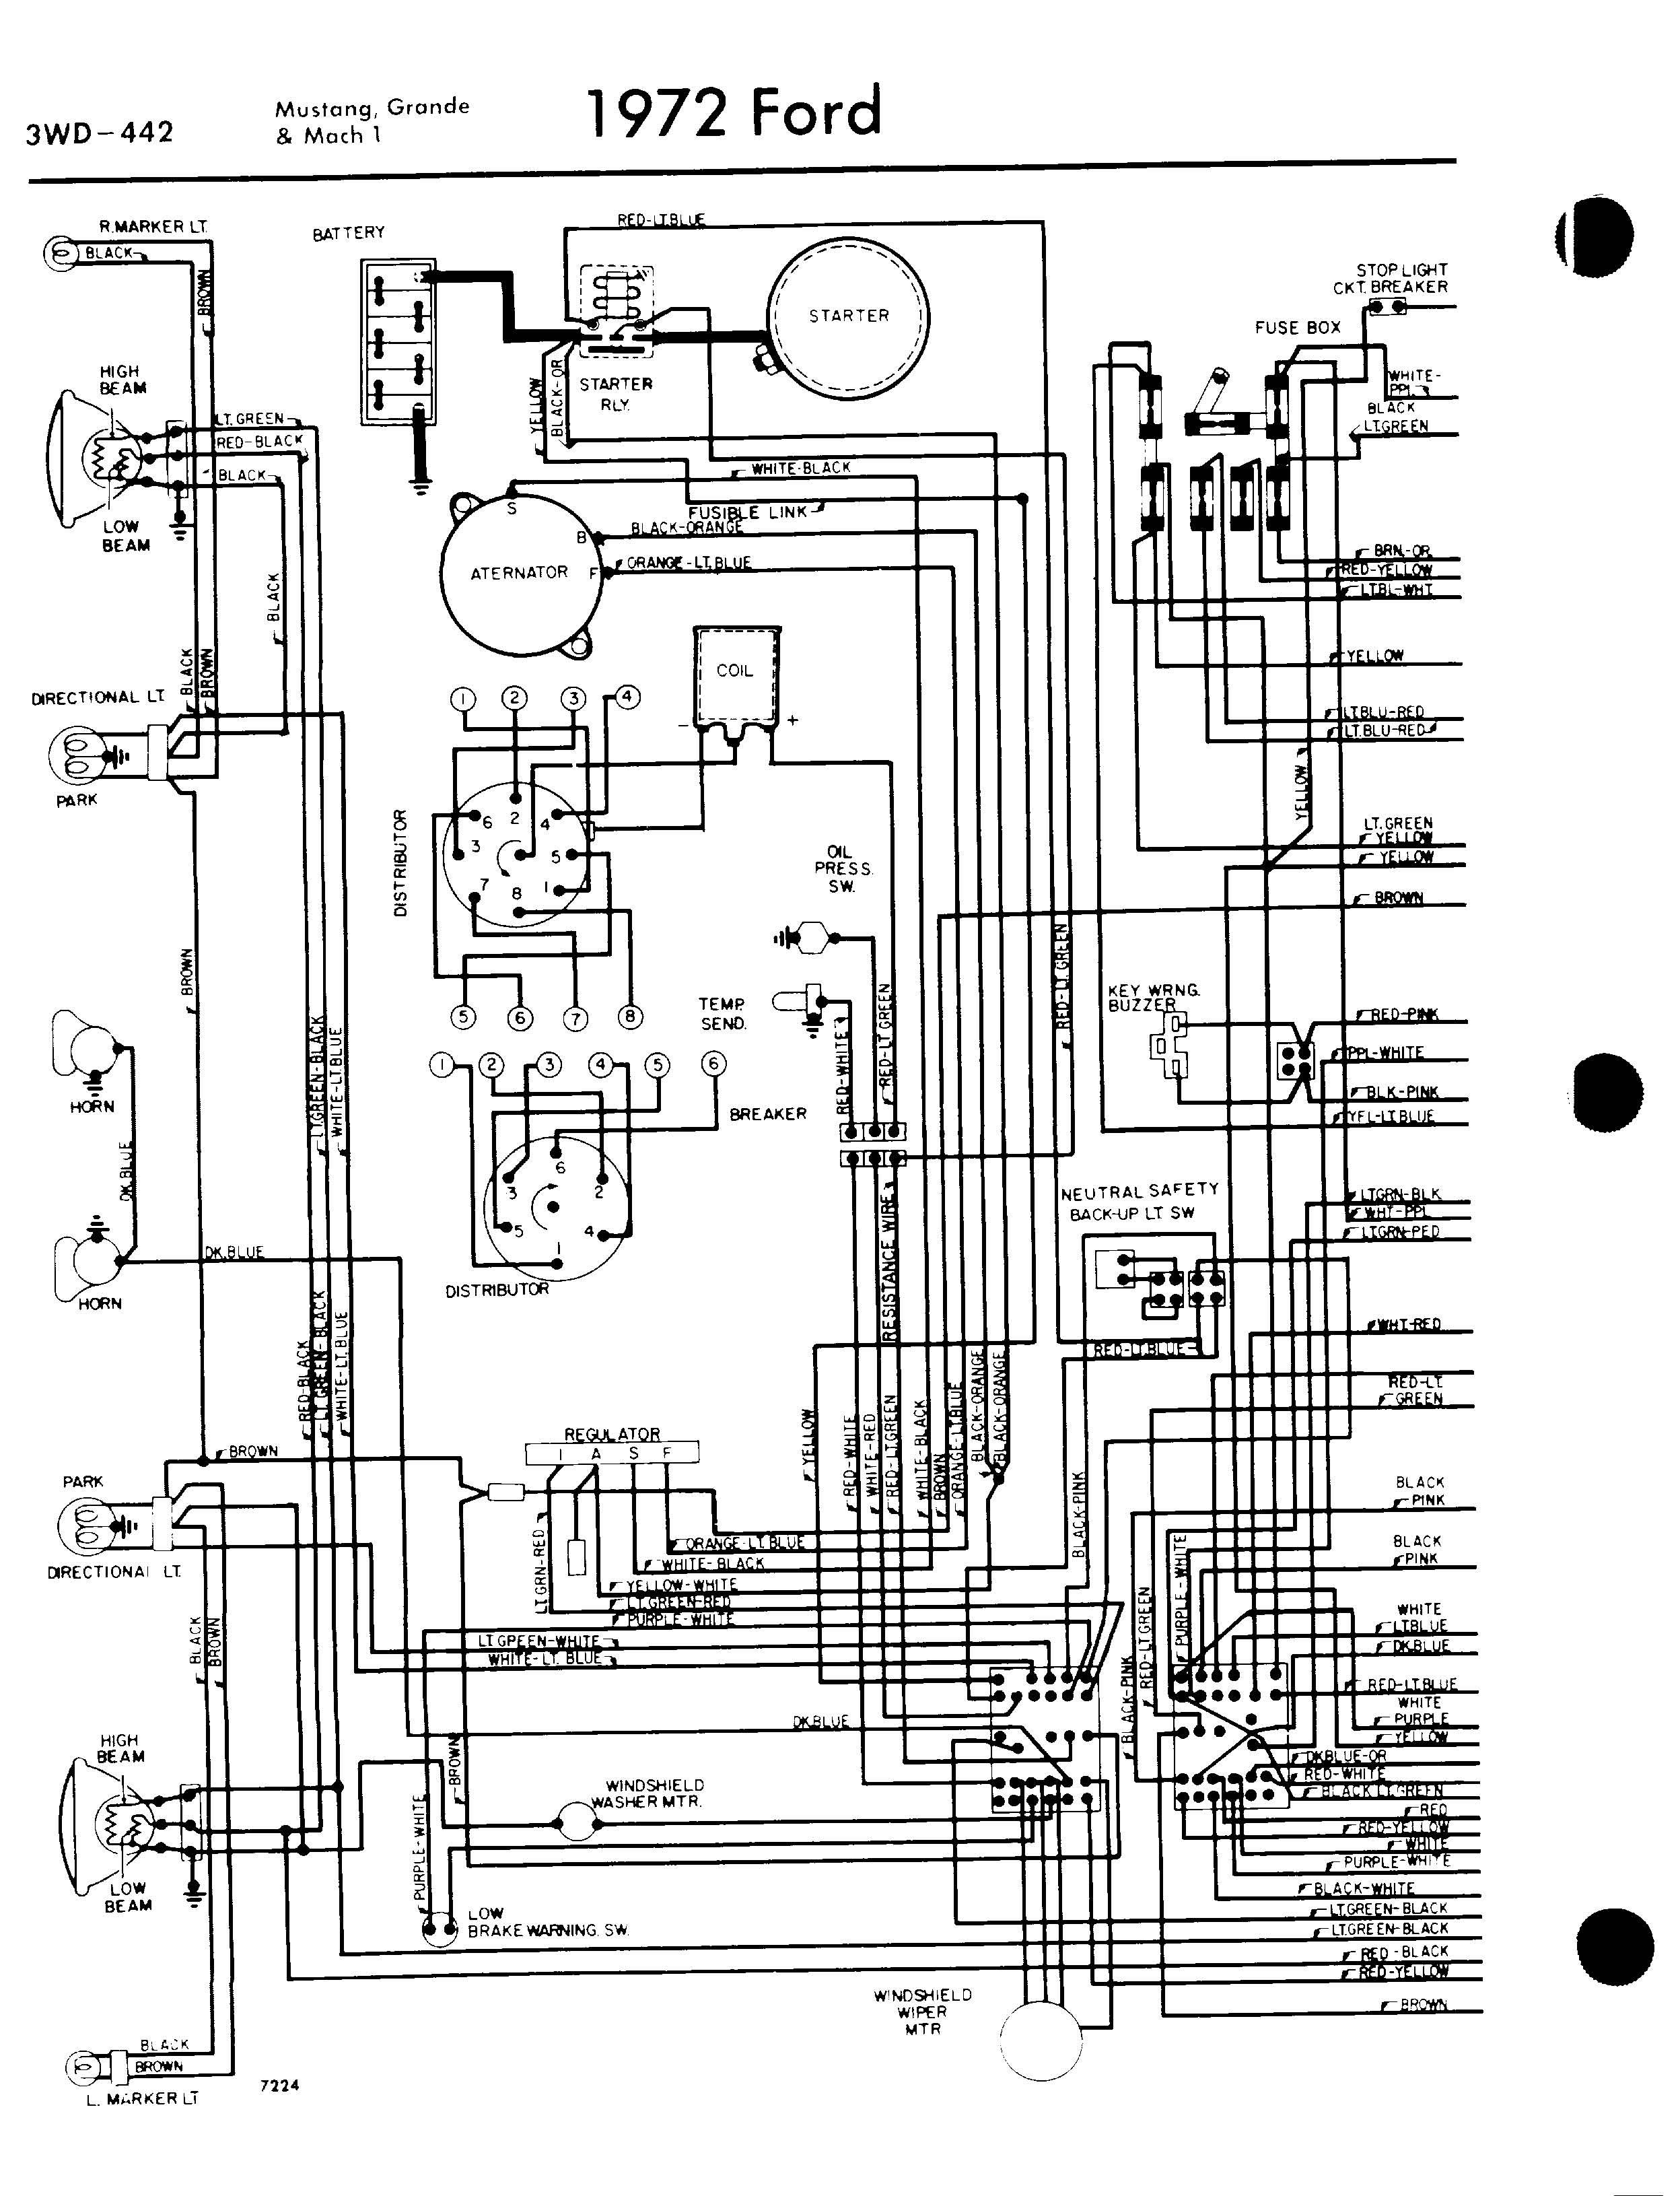 small resolution of ford 302 wiring diagram wiring diagram for you 1973 mustang wiring diagram 1974 ford 302 engine